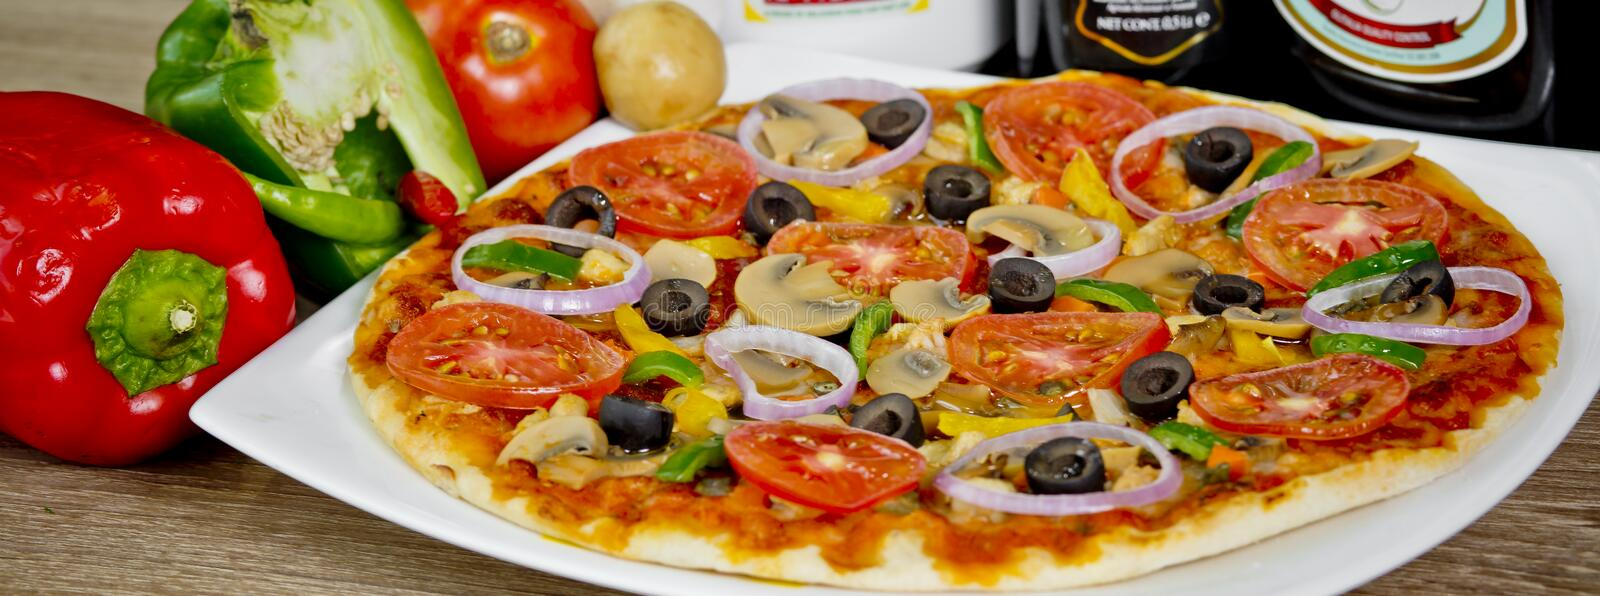 Popular colorful ingredients as like tomatoes, cheese, mushroom, capsicum, olives and other ingredients baked healthy Pizza.  royalty free stock photo